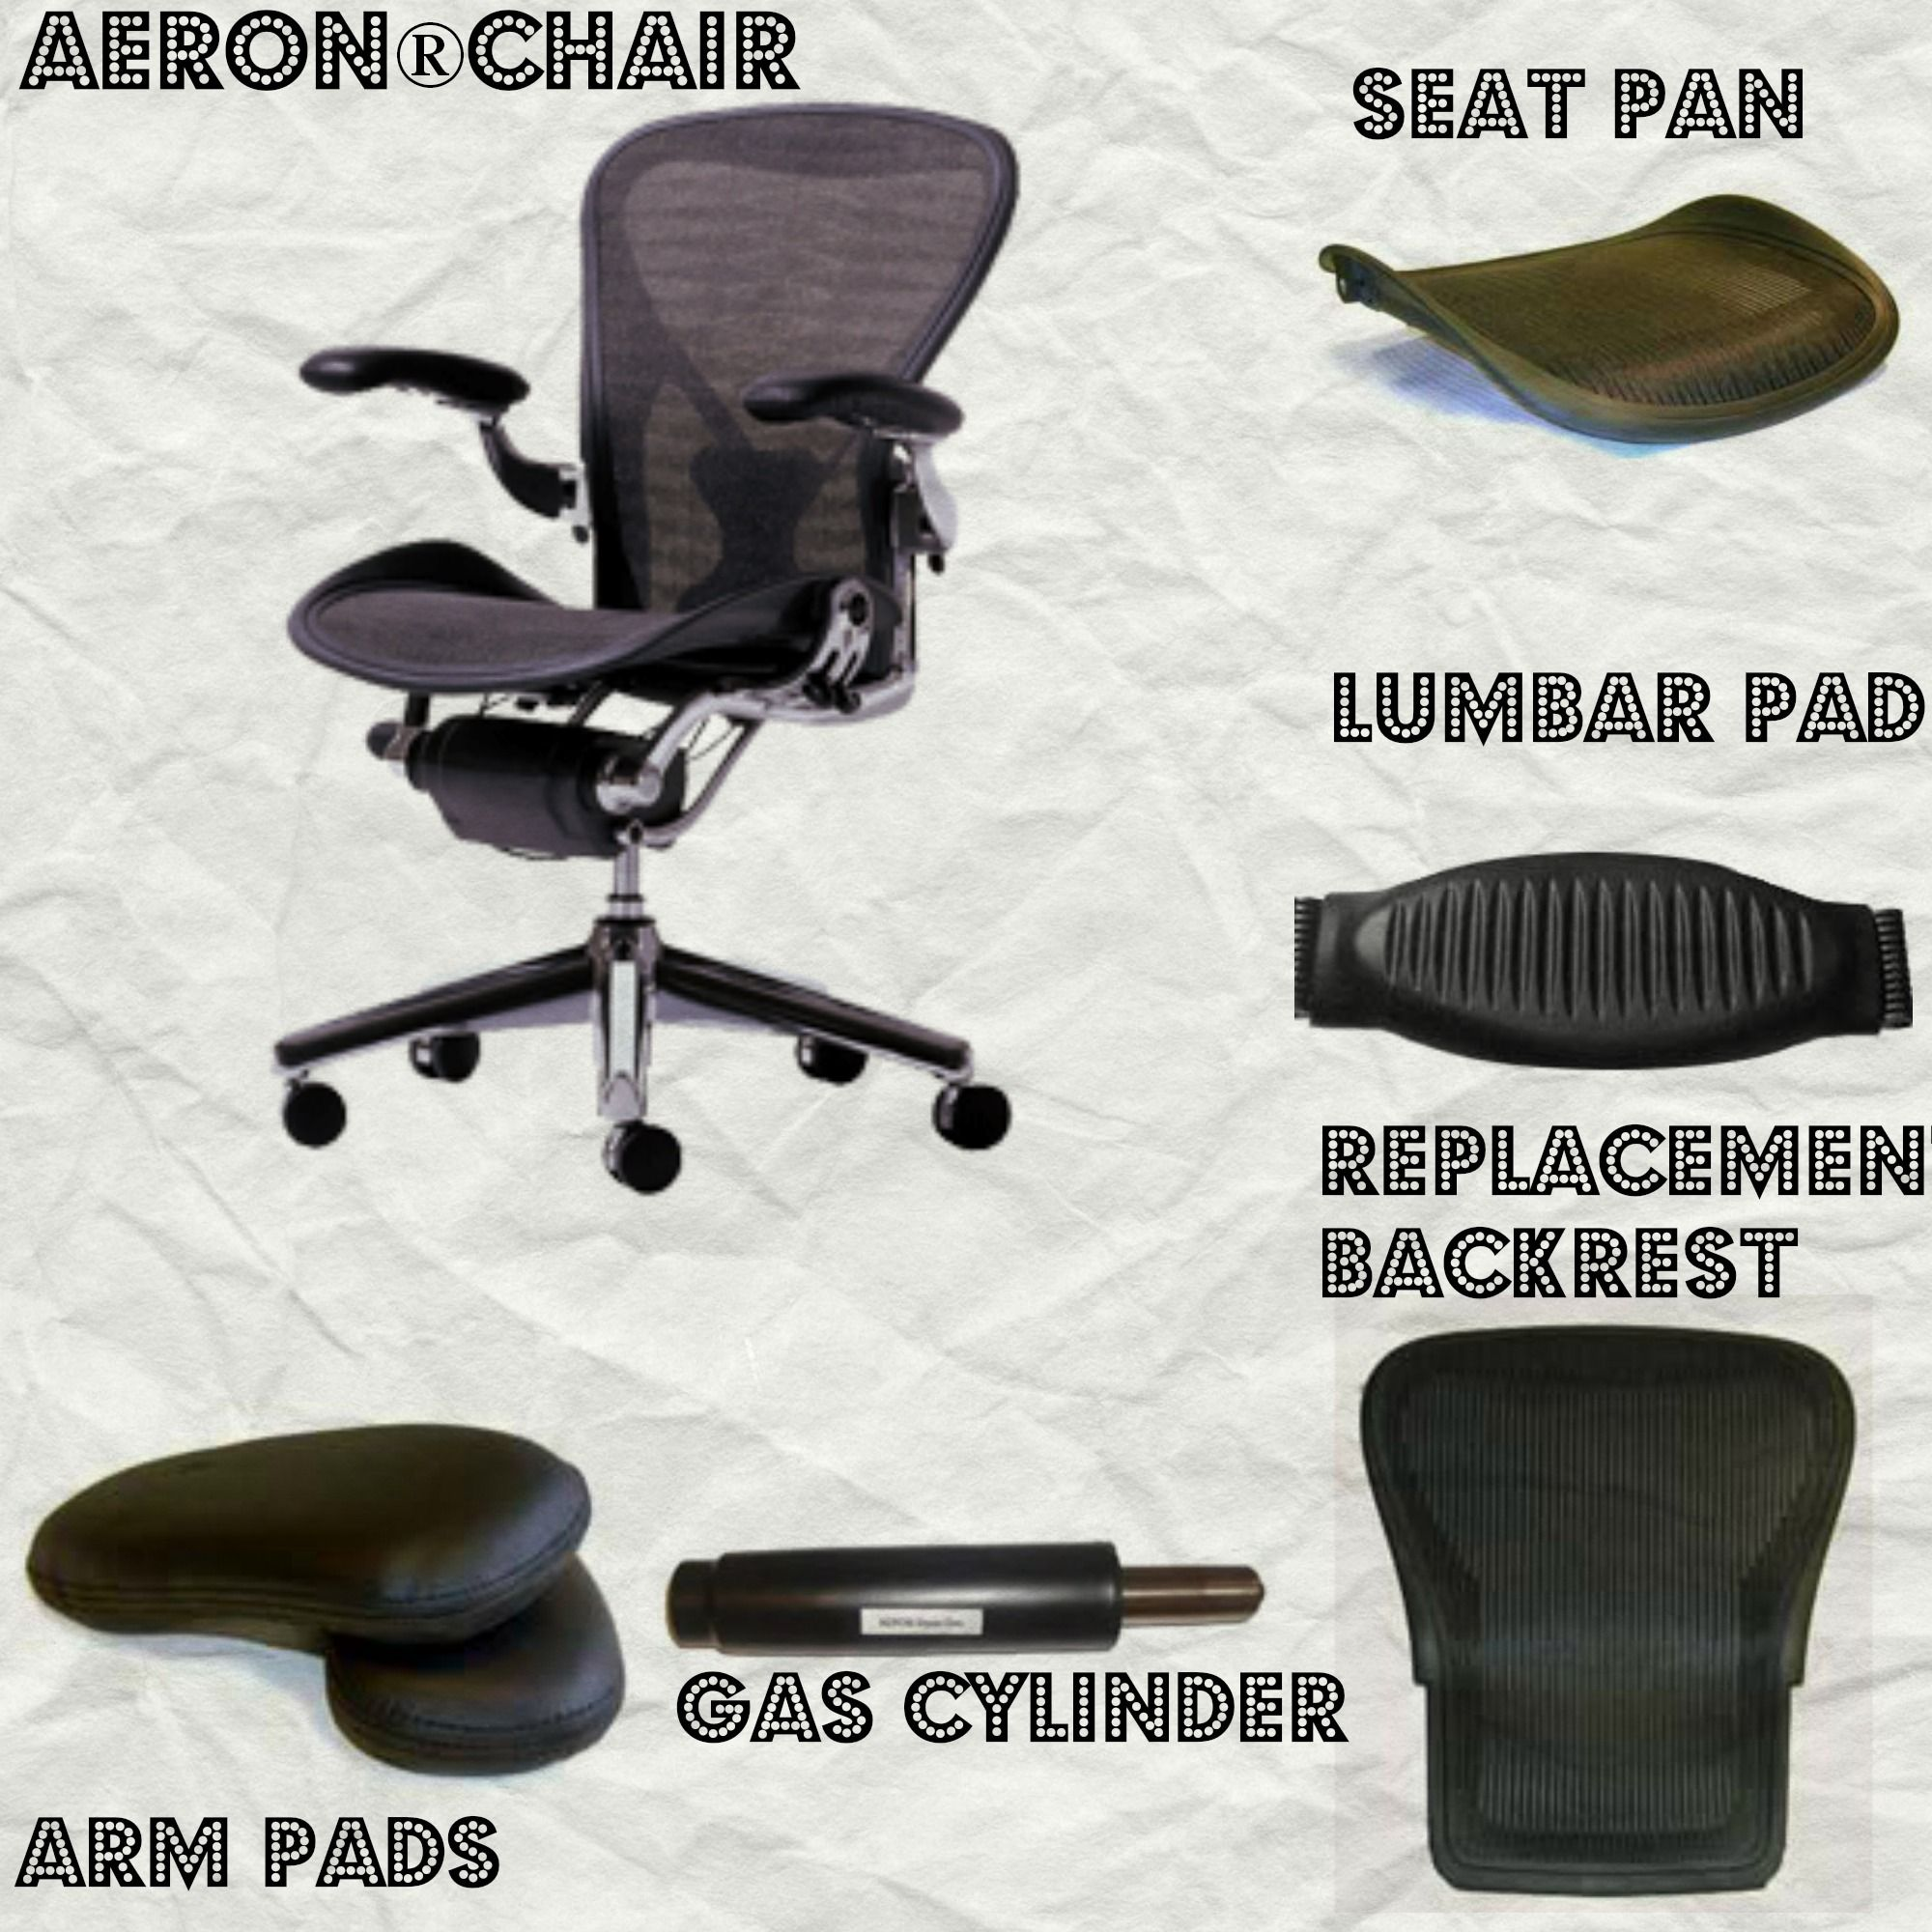 In search of Herman Miller Aeron chair parts Look no